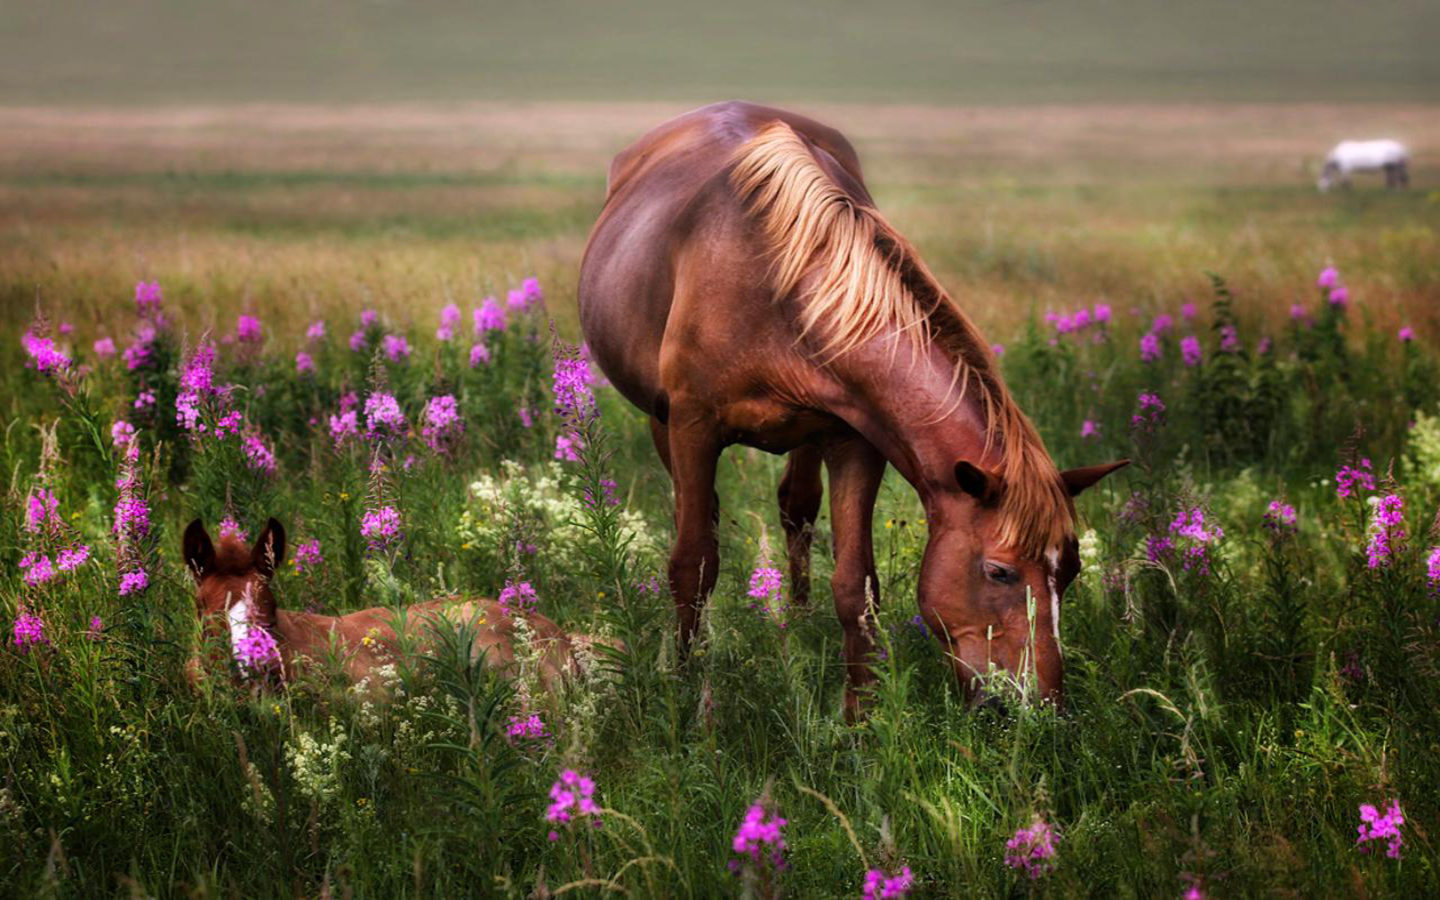 Cute Lock Screen Wallpapers Hd Horses Red Mare And Foal Meadow Flowers Hd Wallpaper4829